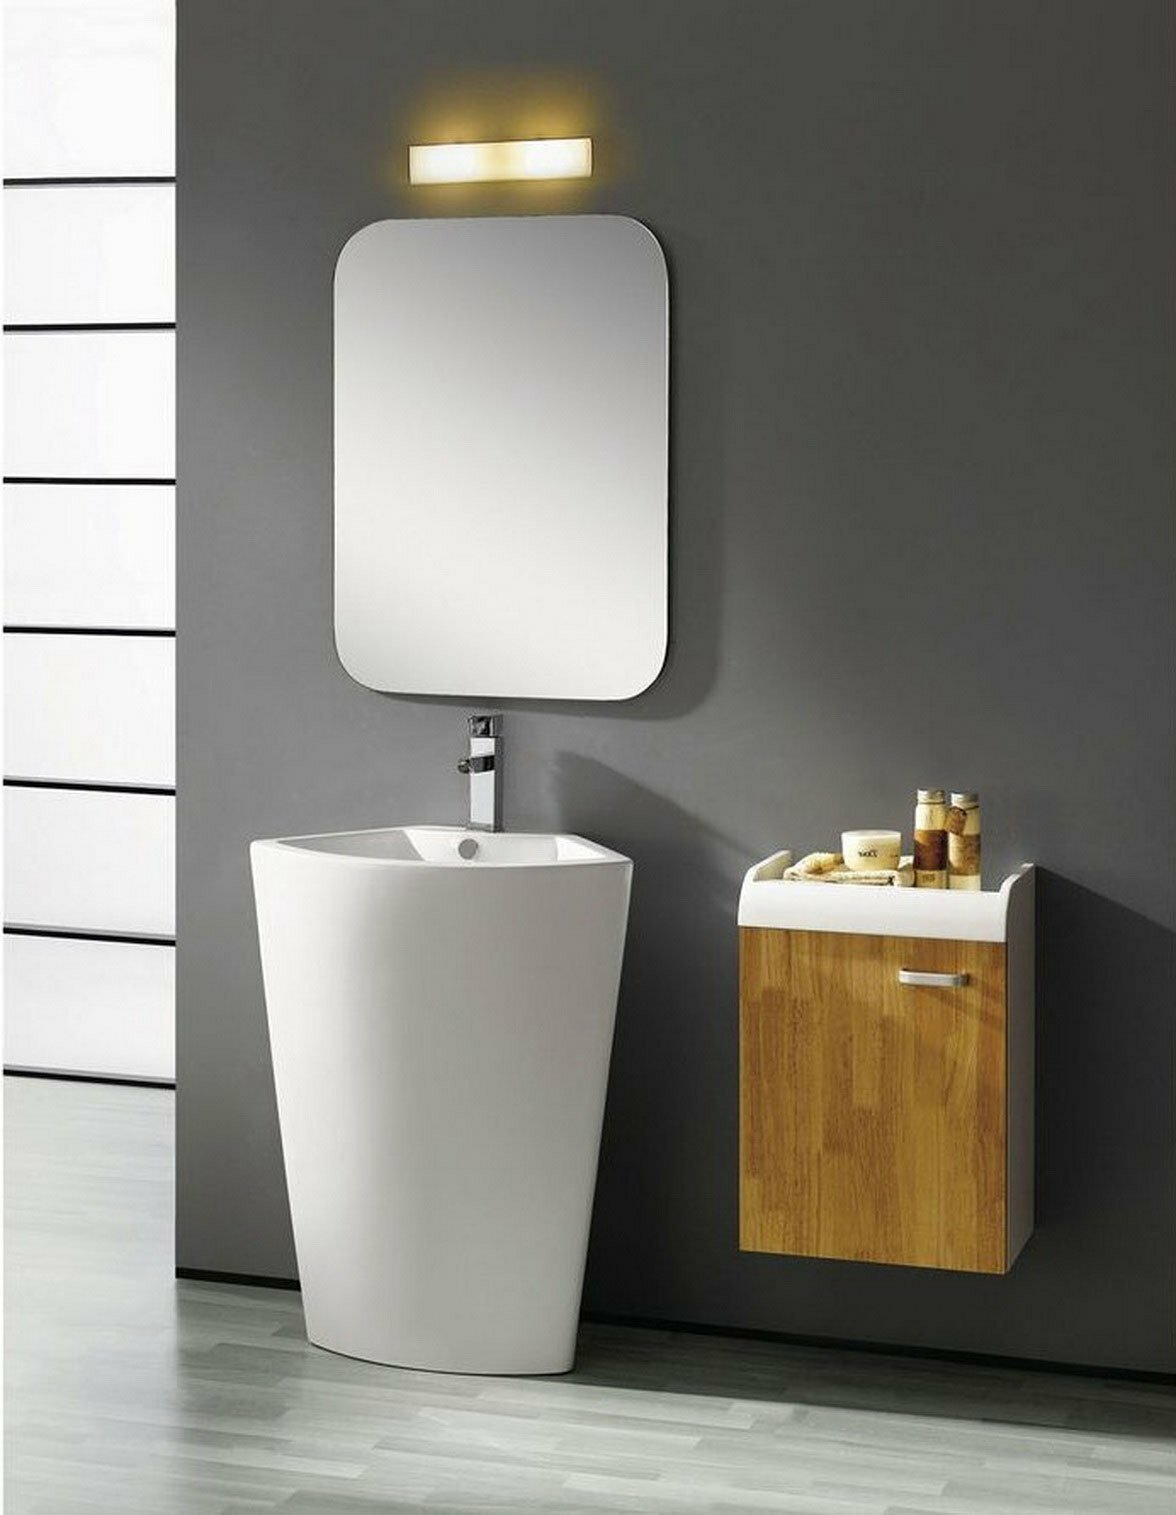 Designer Toilets And Sinks Top 15 Bathroom Sink Designs And Models Mostbeautifulthings